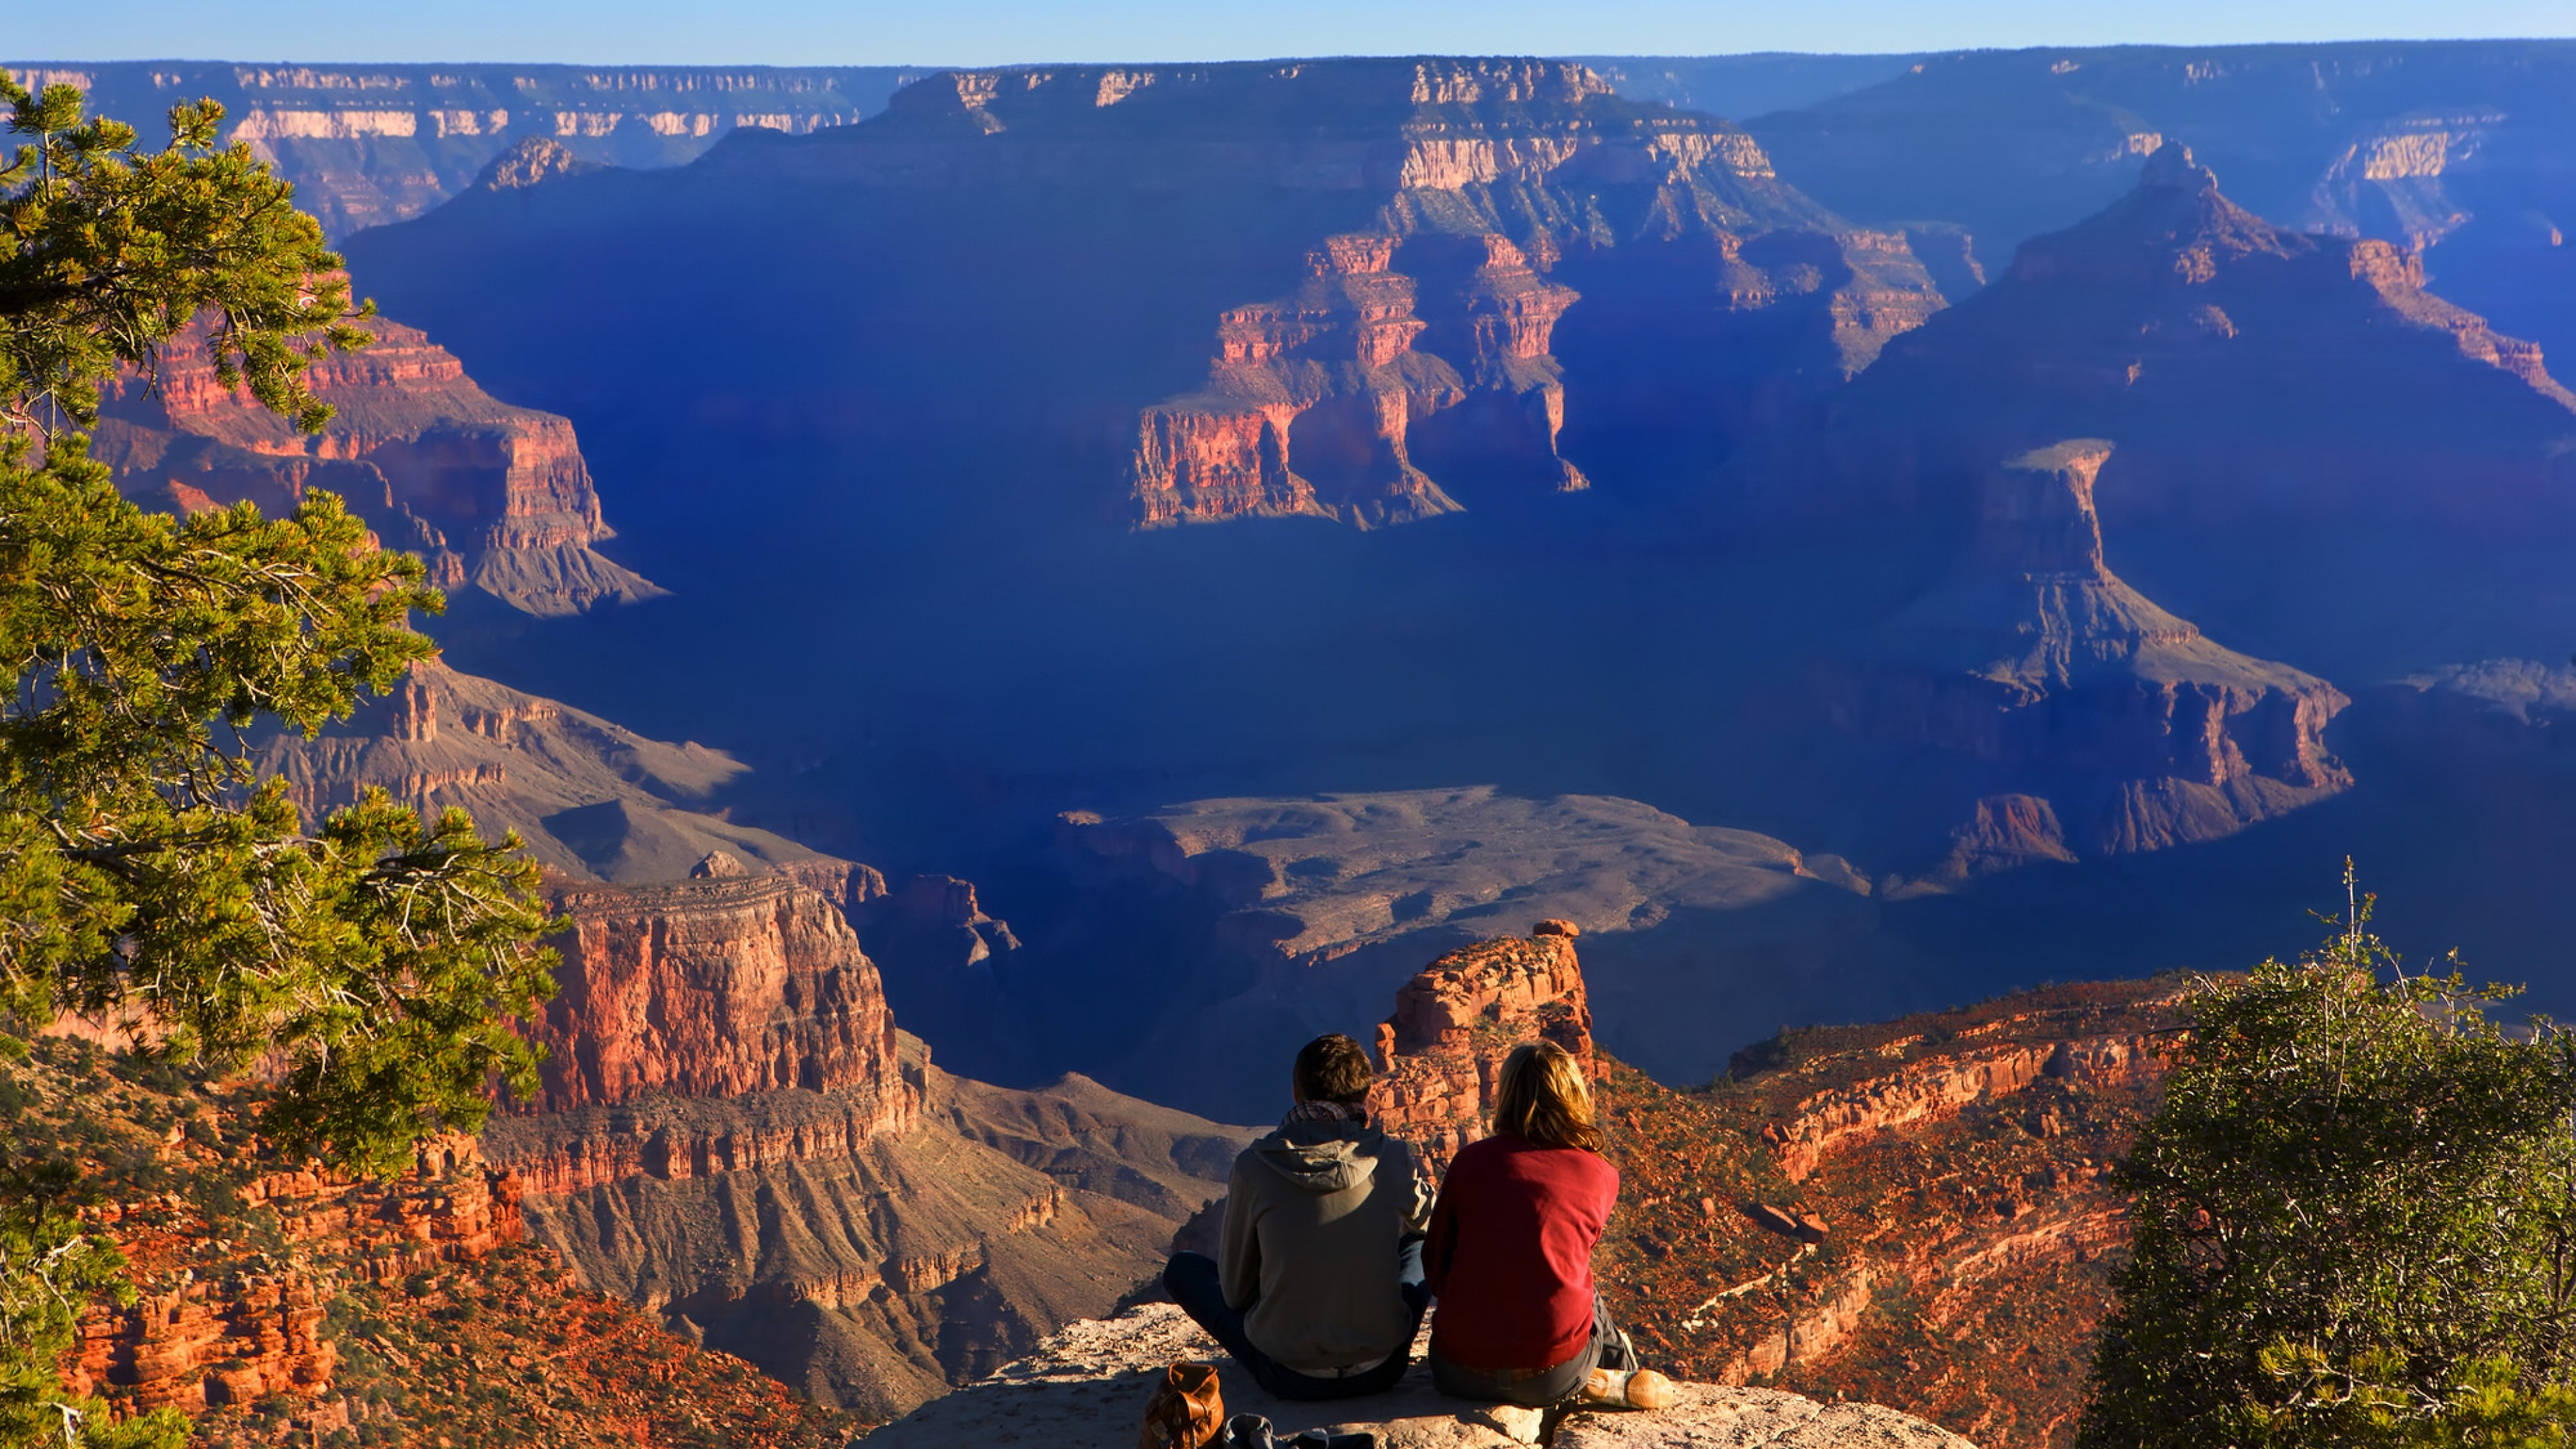 Hikers enjoying the view at Grand Canyon National Park